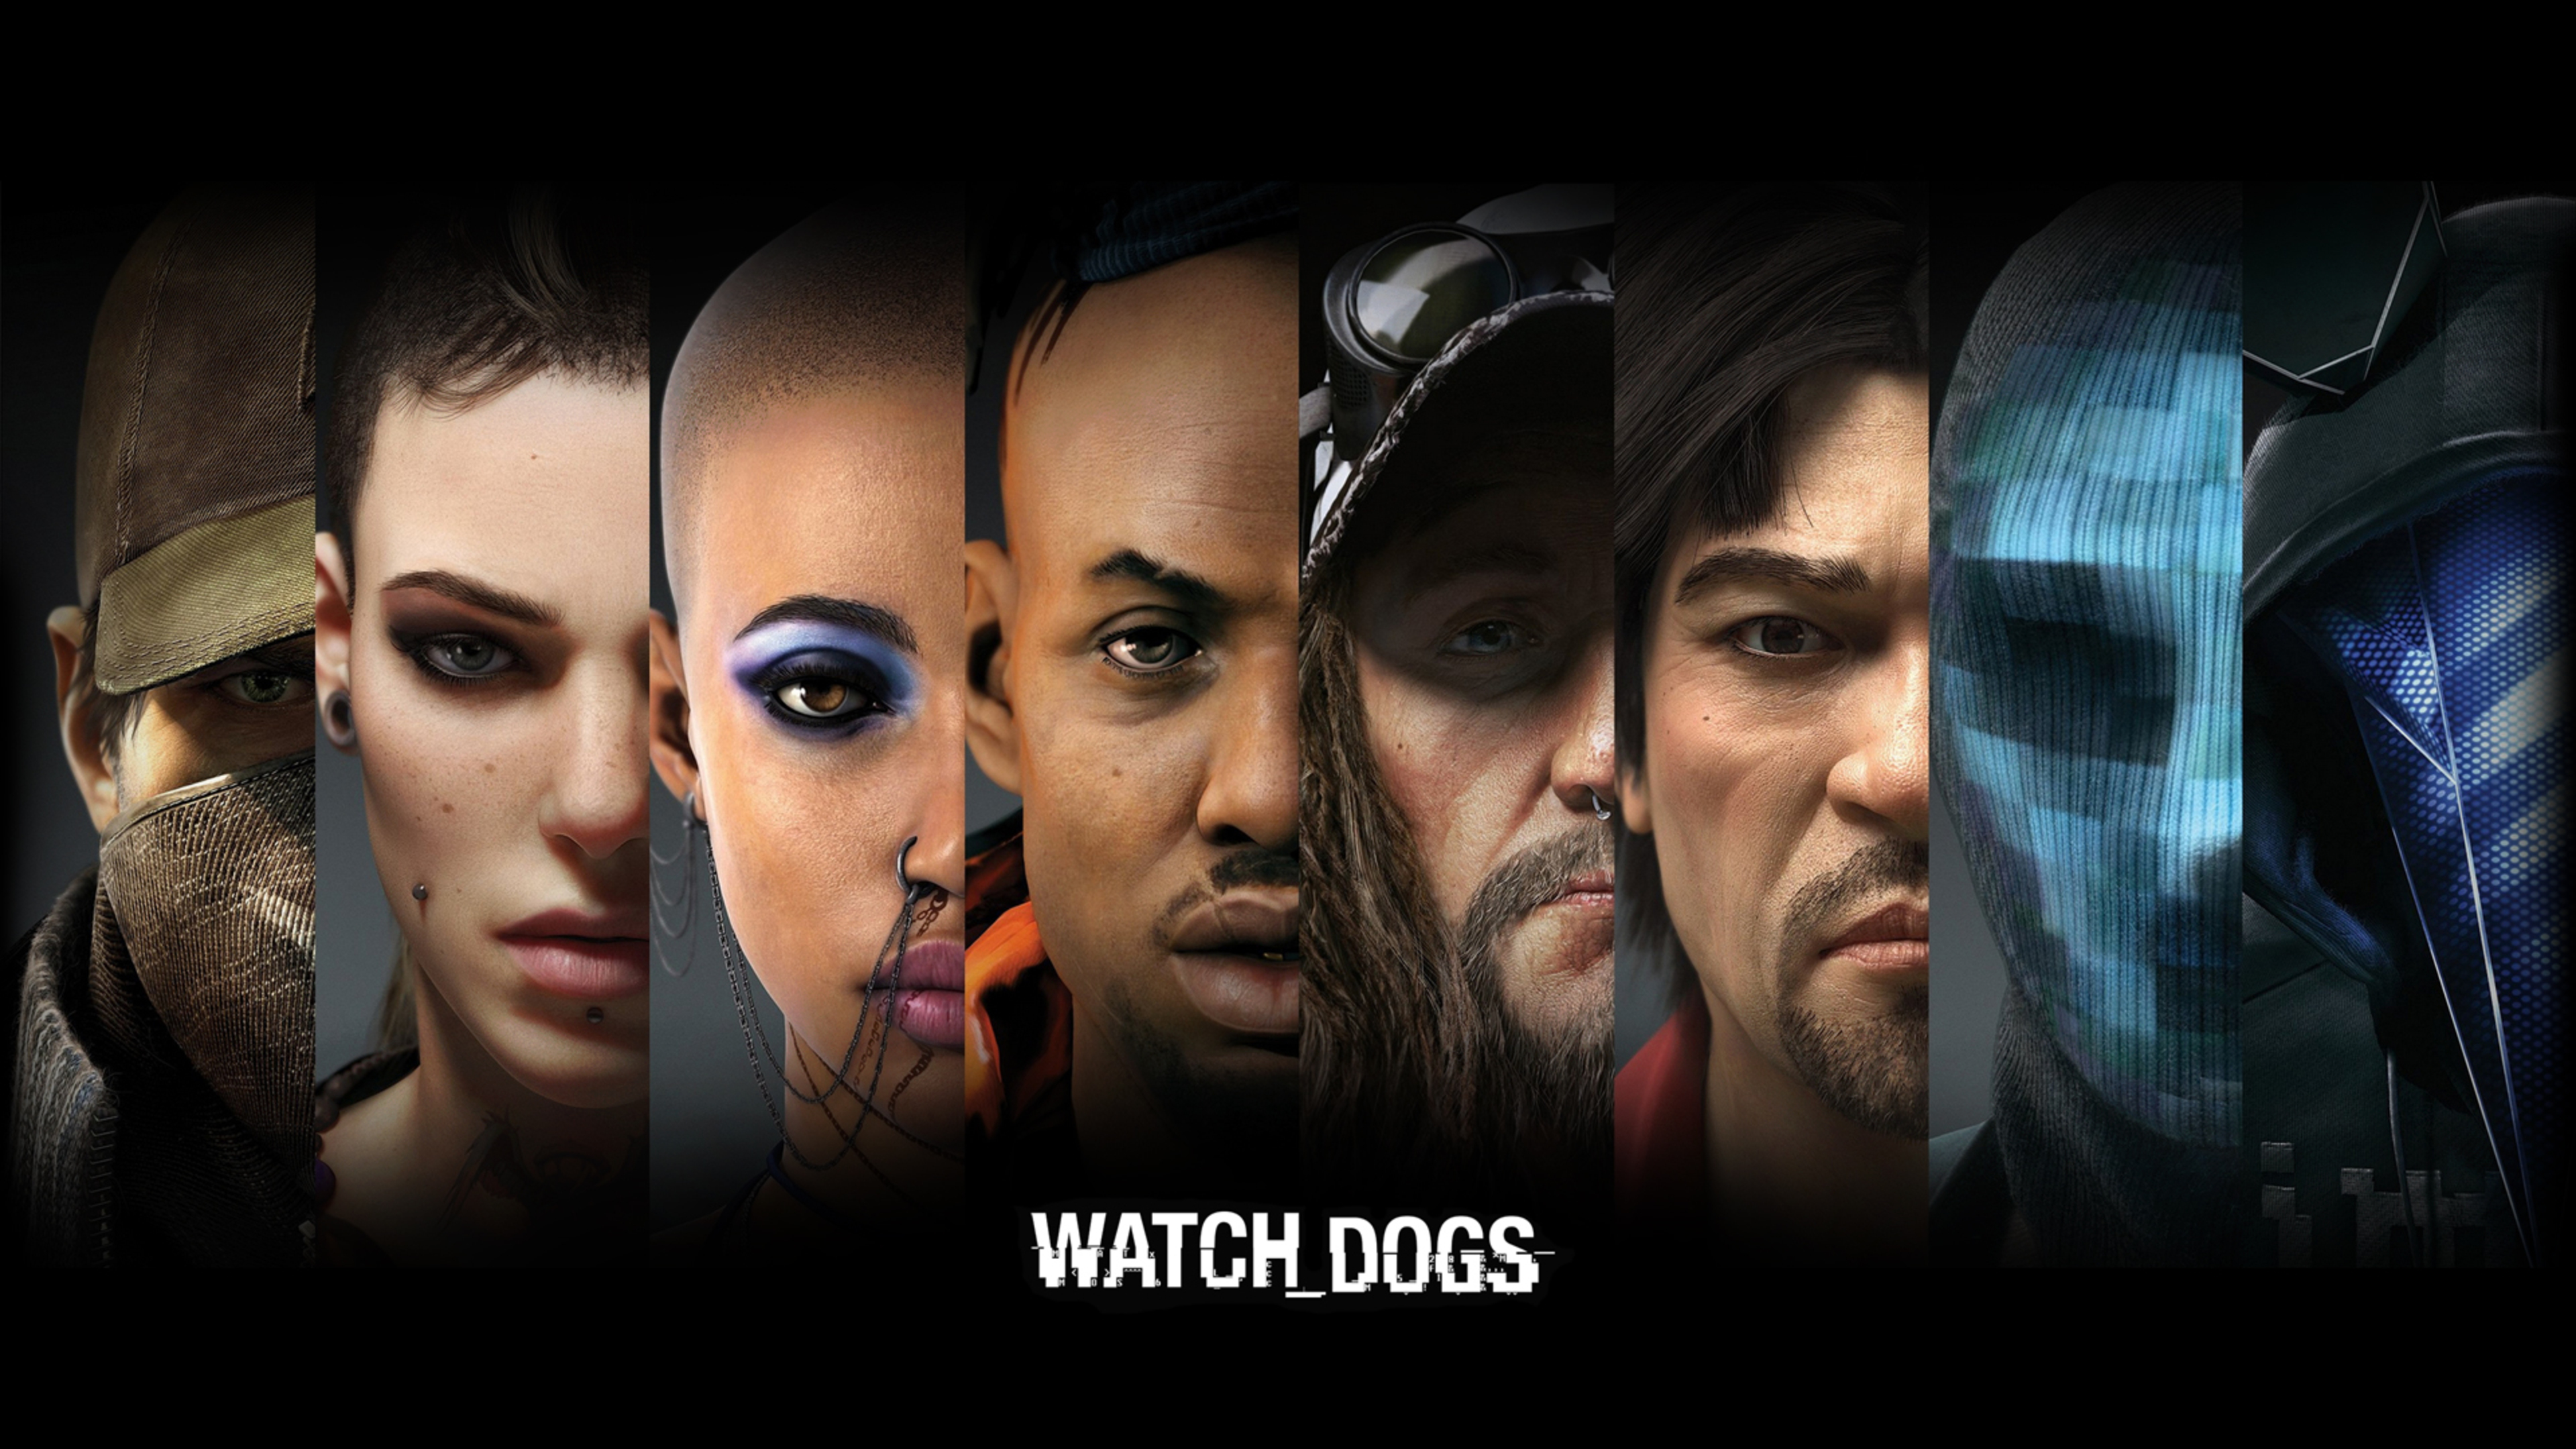 watch dogs banner 1535967252 - Watch Dogs Banner - xbox games wallpapers, watch dogs 2 wallpapers, ps games wallpapers, pc games wallpapers, games wallpapers, 2016 games wallpapers